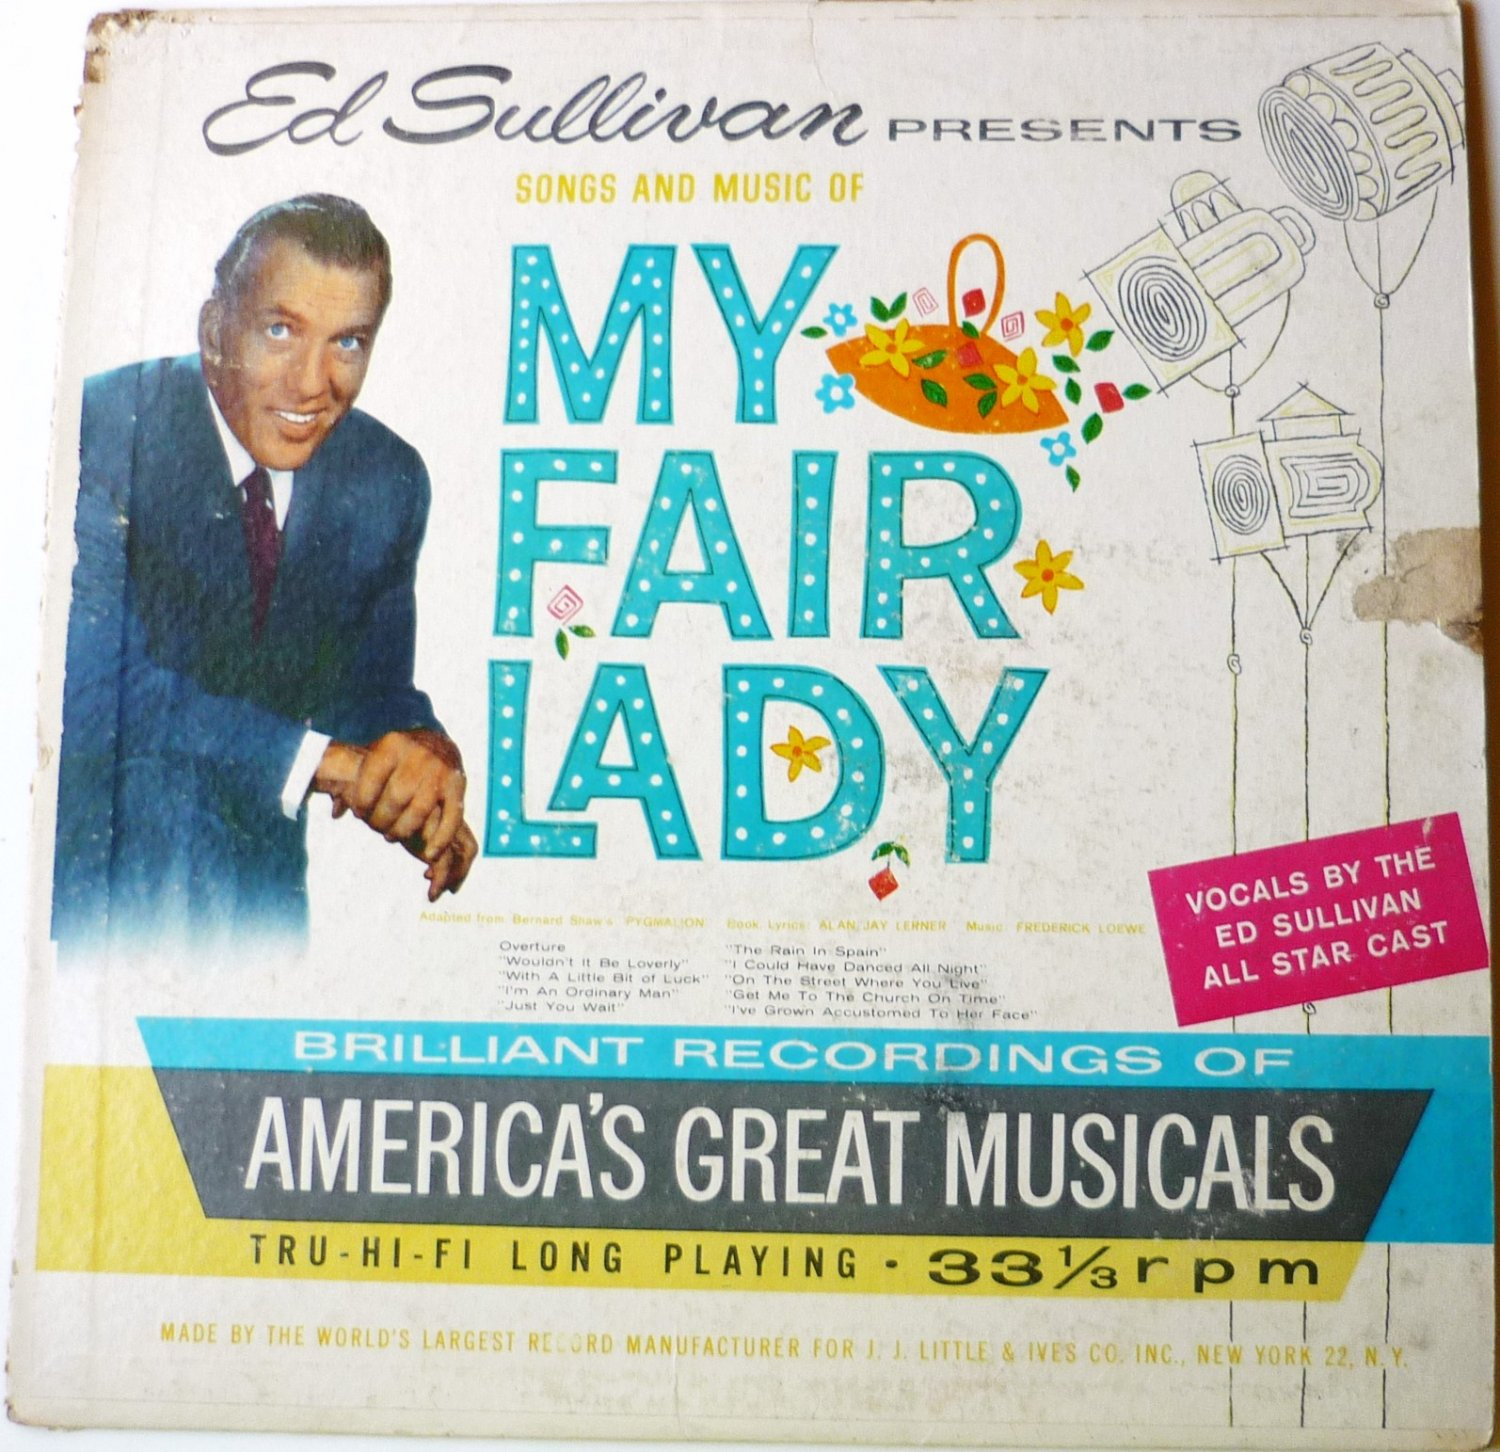 Ed Sullivan Presents Songs and Music of My Fair Lady lp